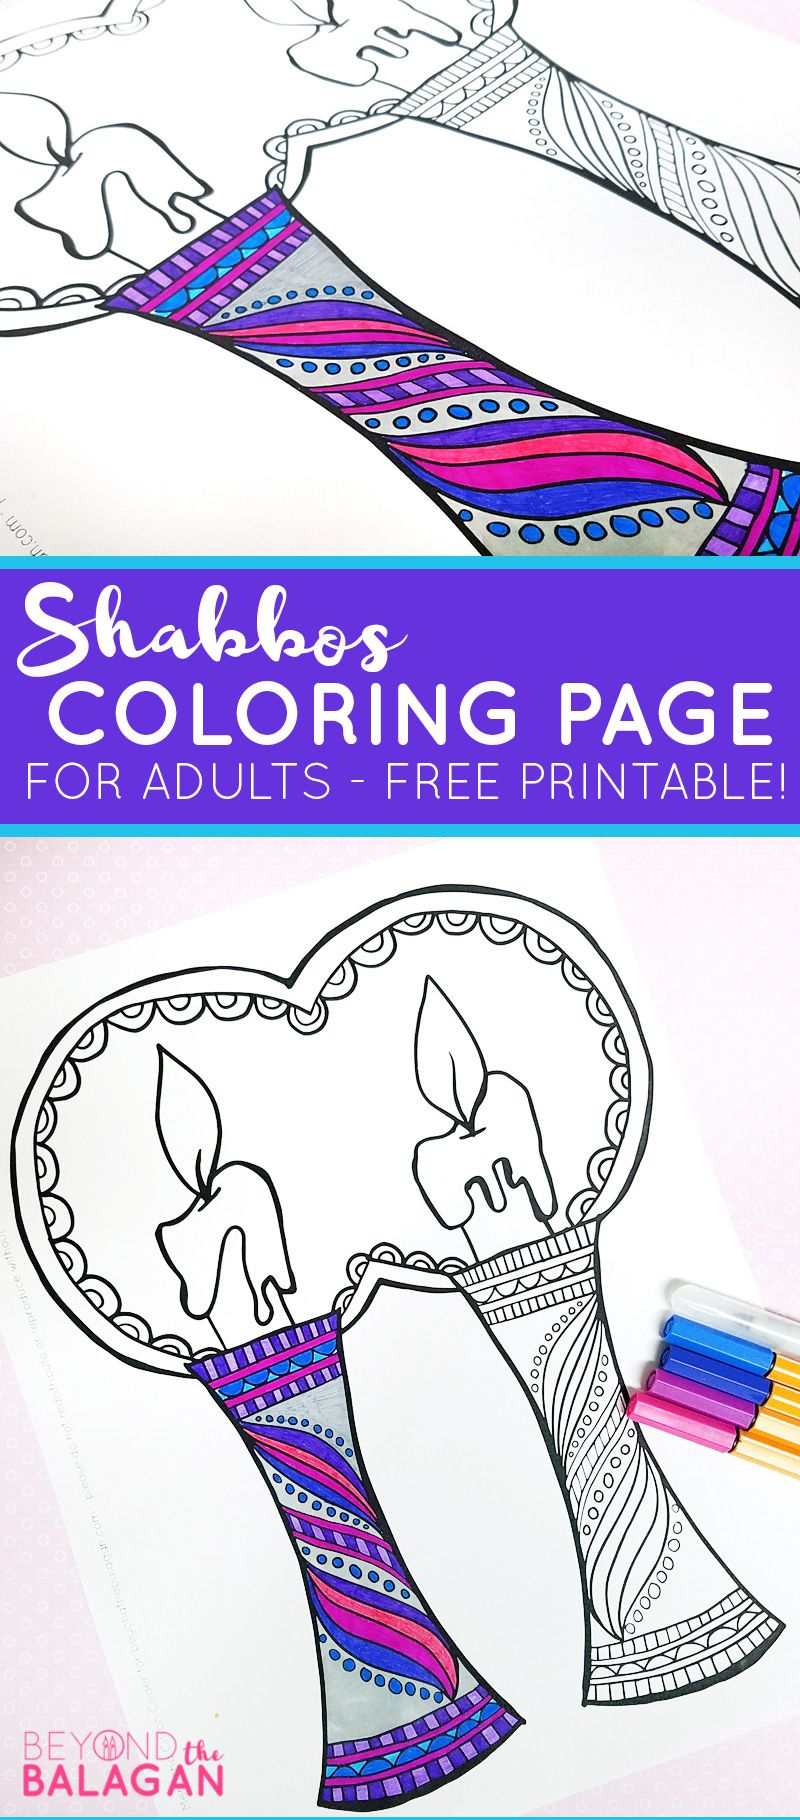 Download This Free Printable Shabbat Coloring Page For